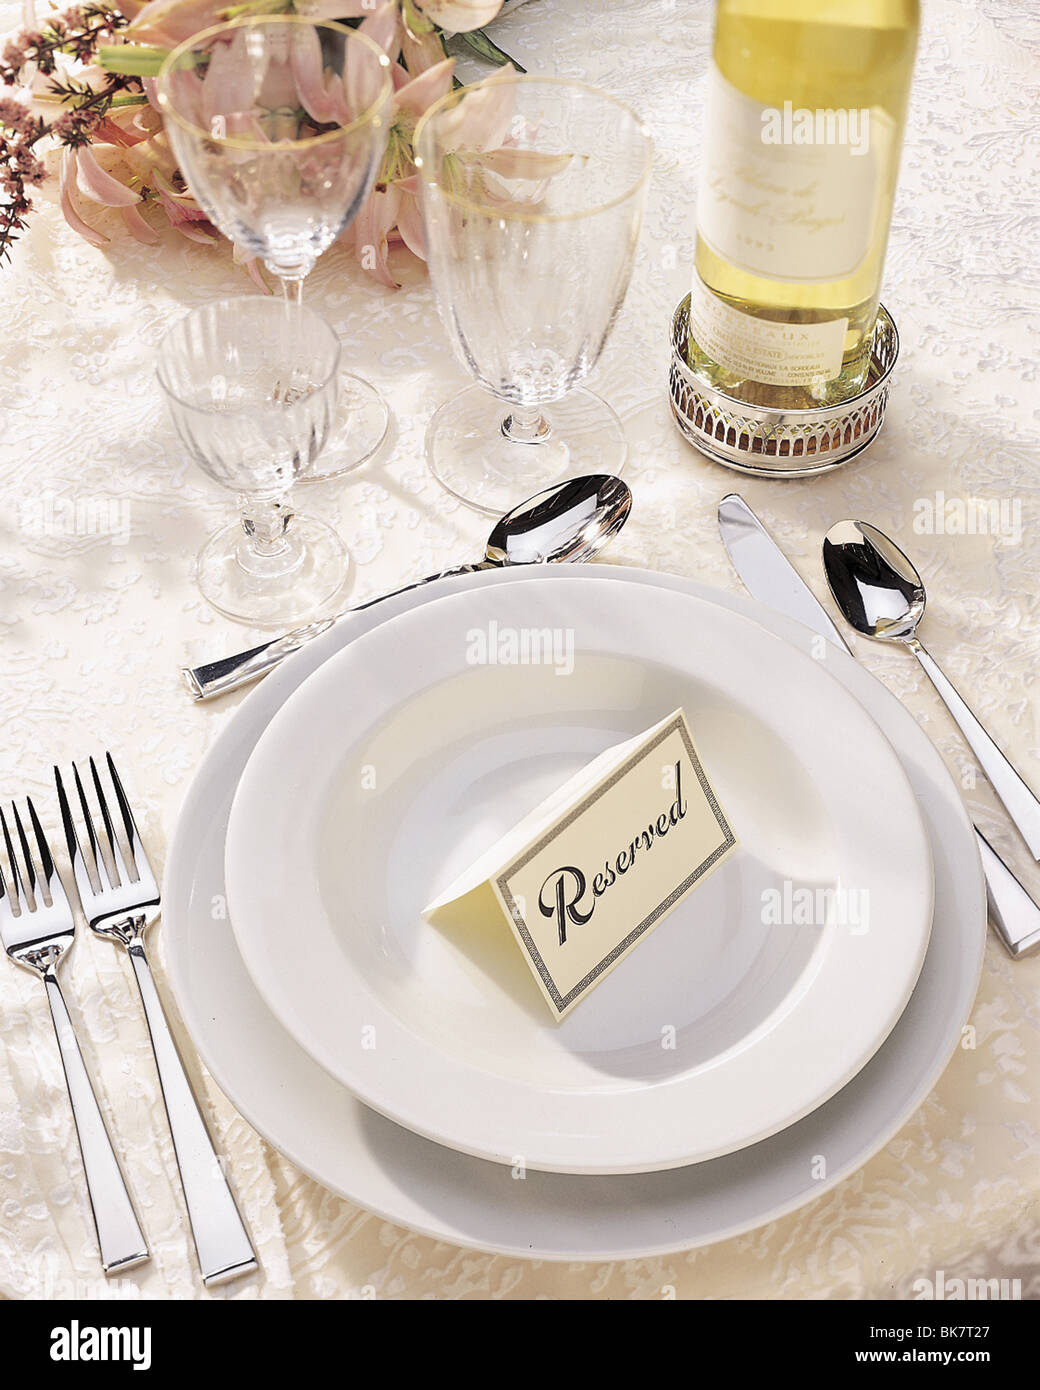 Reserved card on a place setting with crystal, flatware and flowers on elegant brocade cloth. - Stock Image